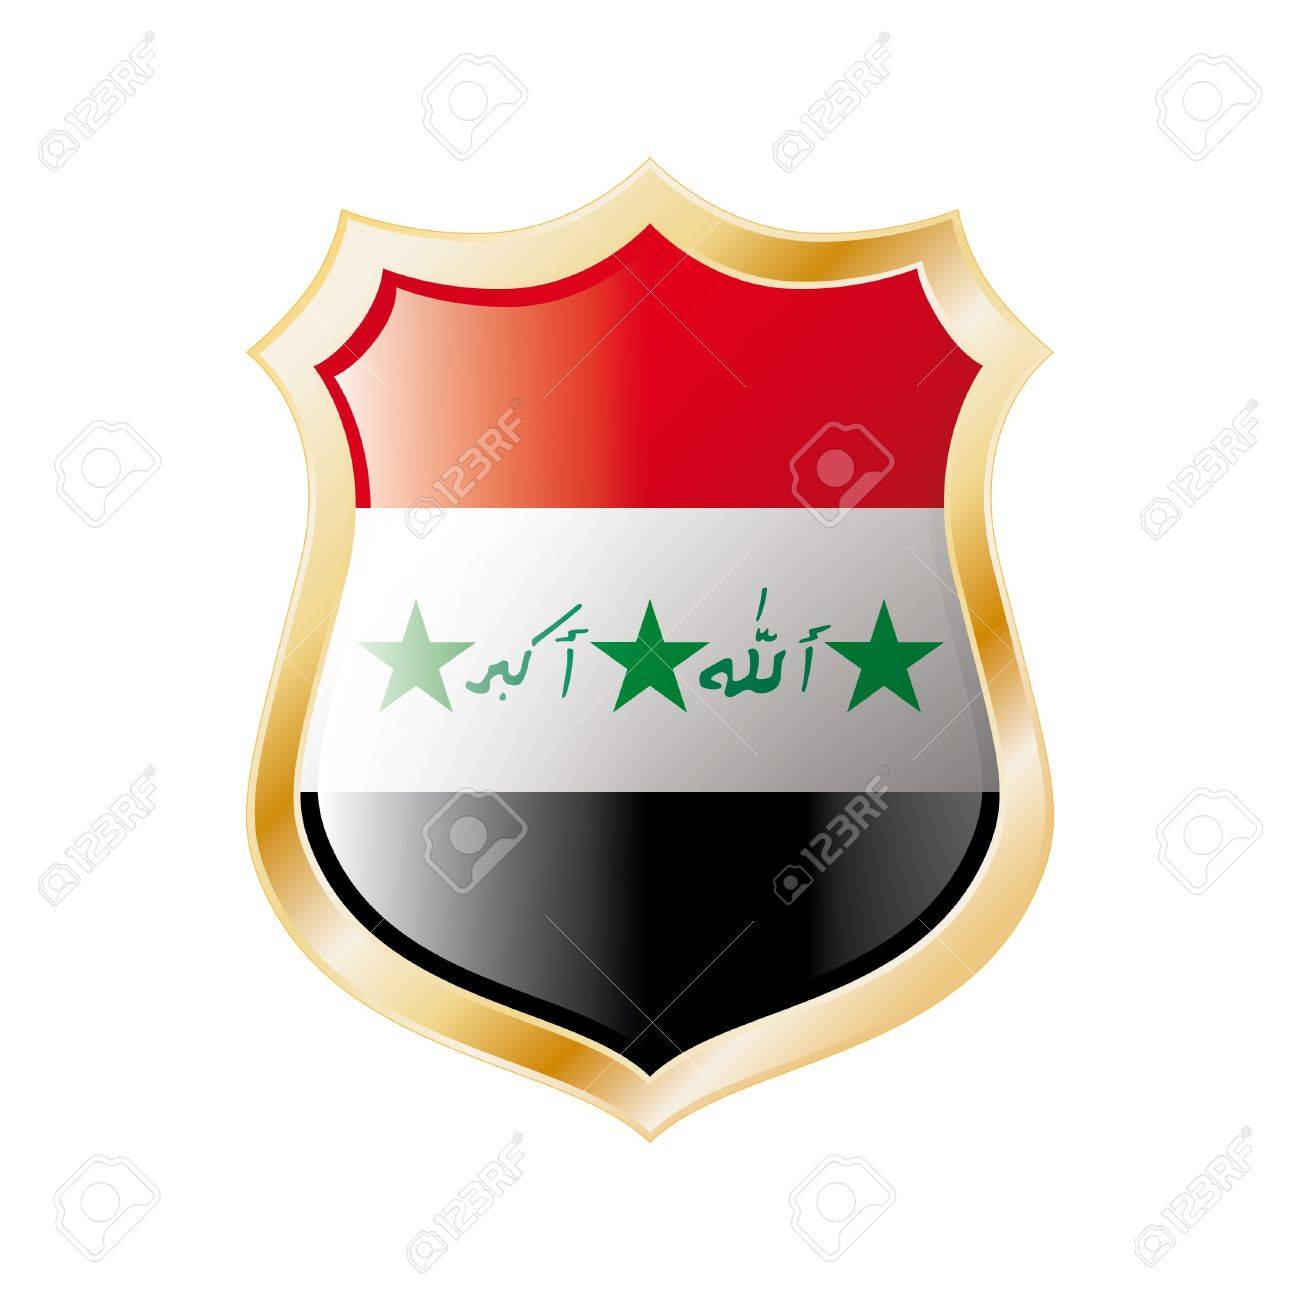 Iraq flag on metal shiny shield  illustration. Collection of flags on shield against white background. Abstract isolated object. Stock Photo - 7117715